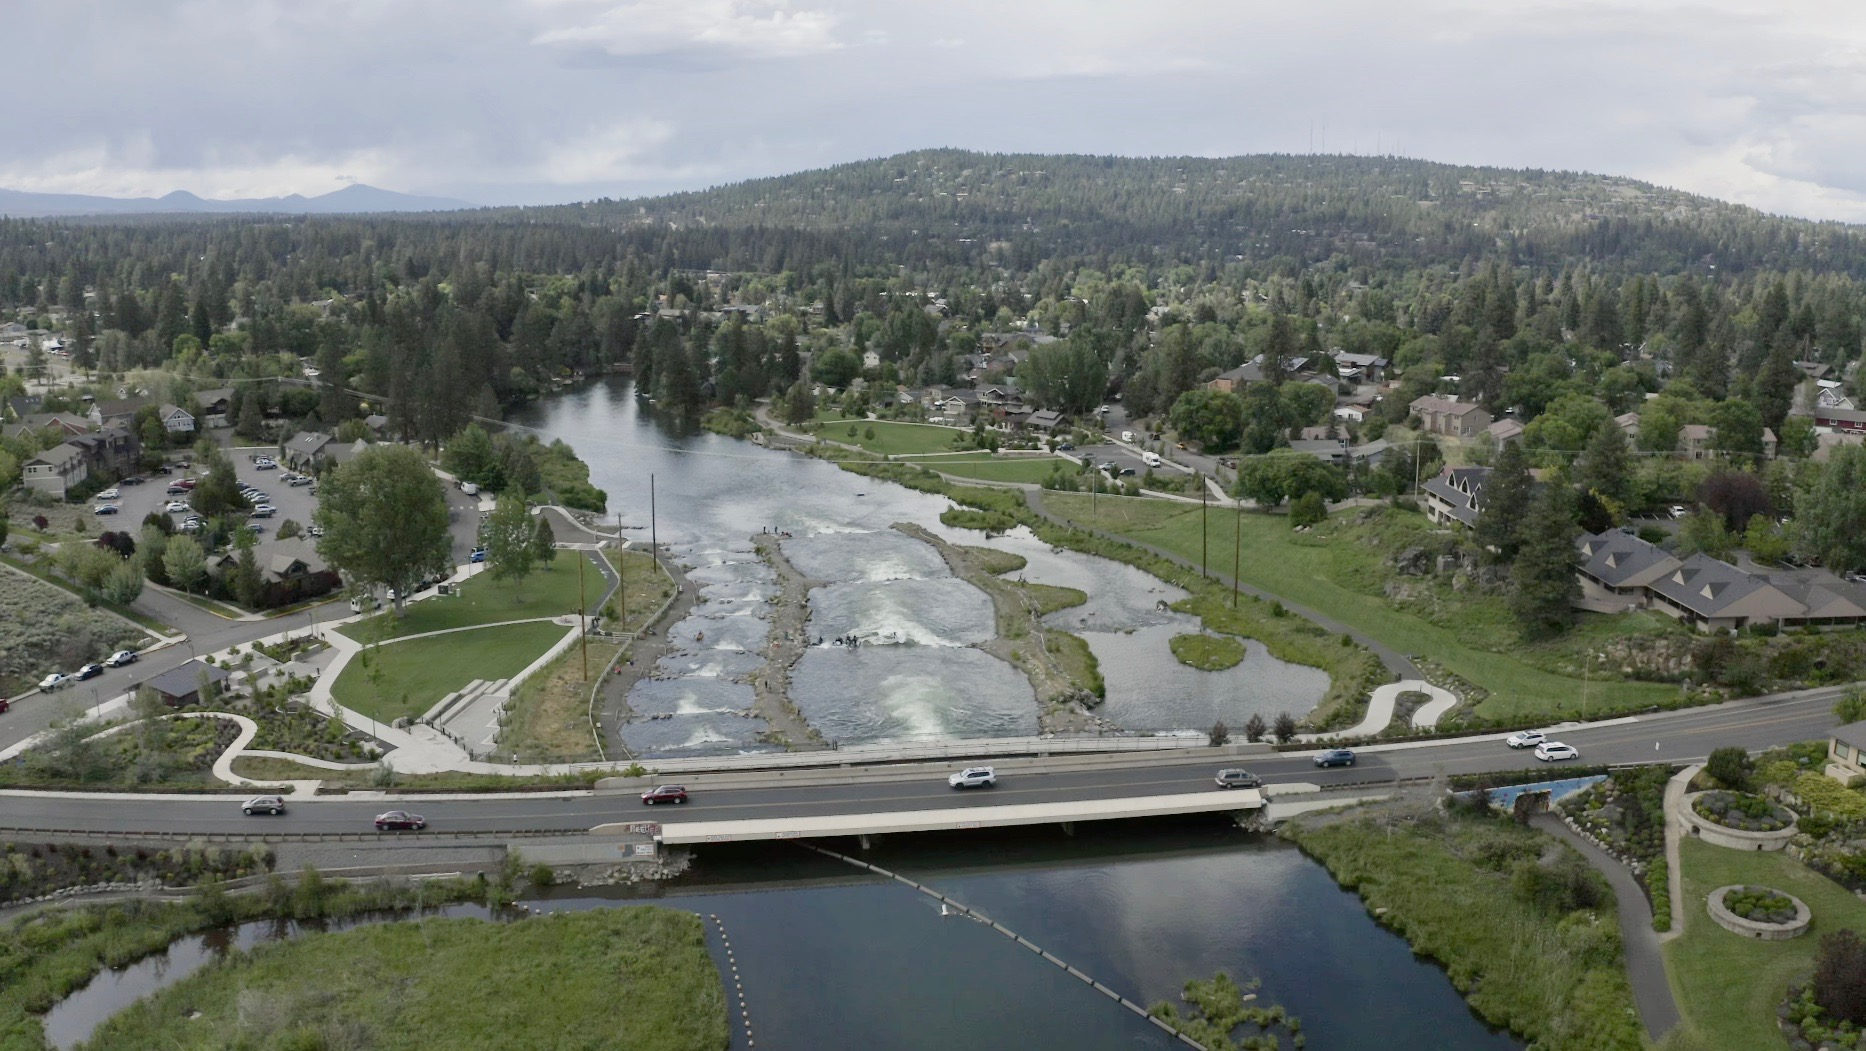 Aerial image of the Bend White Water Park in Bend, Oregon.